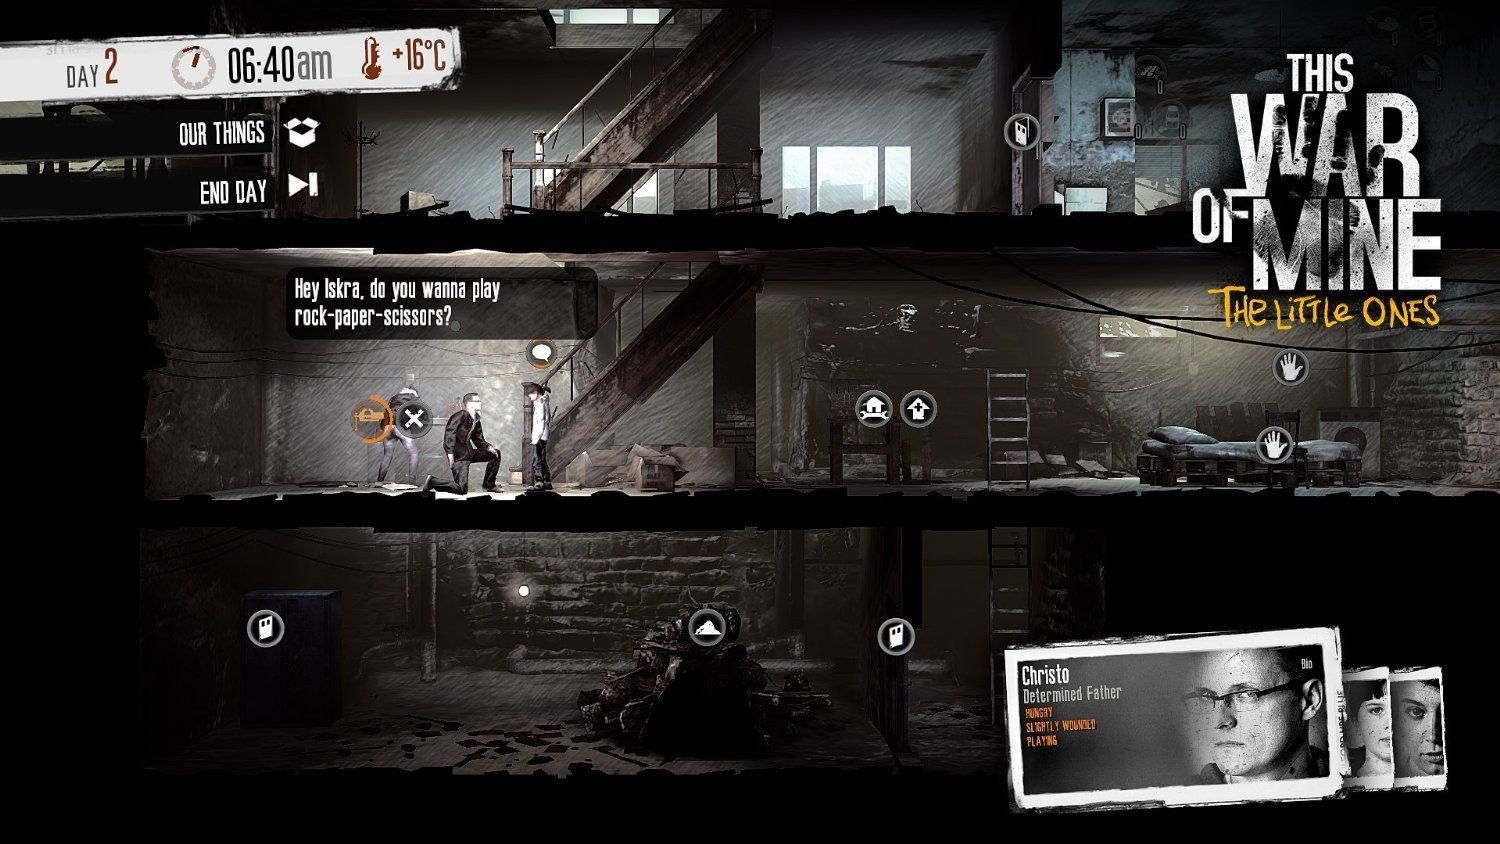 This War Of Mine: The Little Ones (PS4) - 7